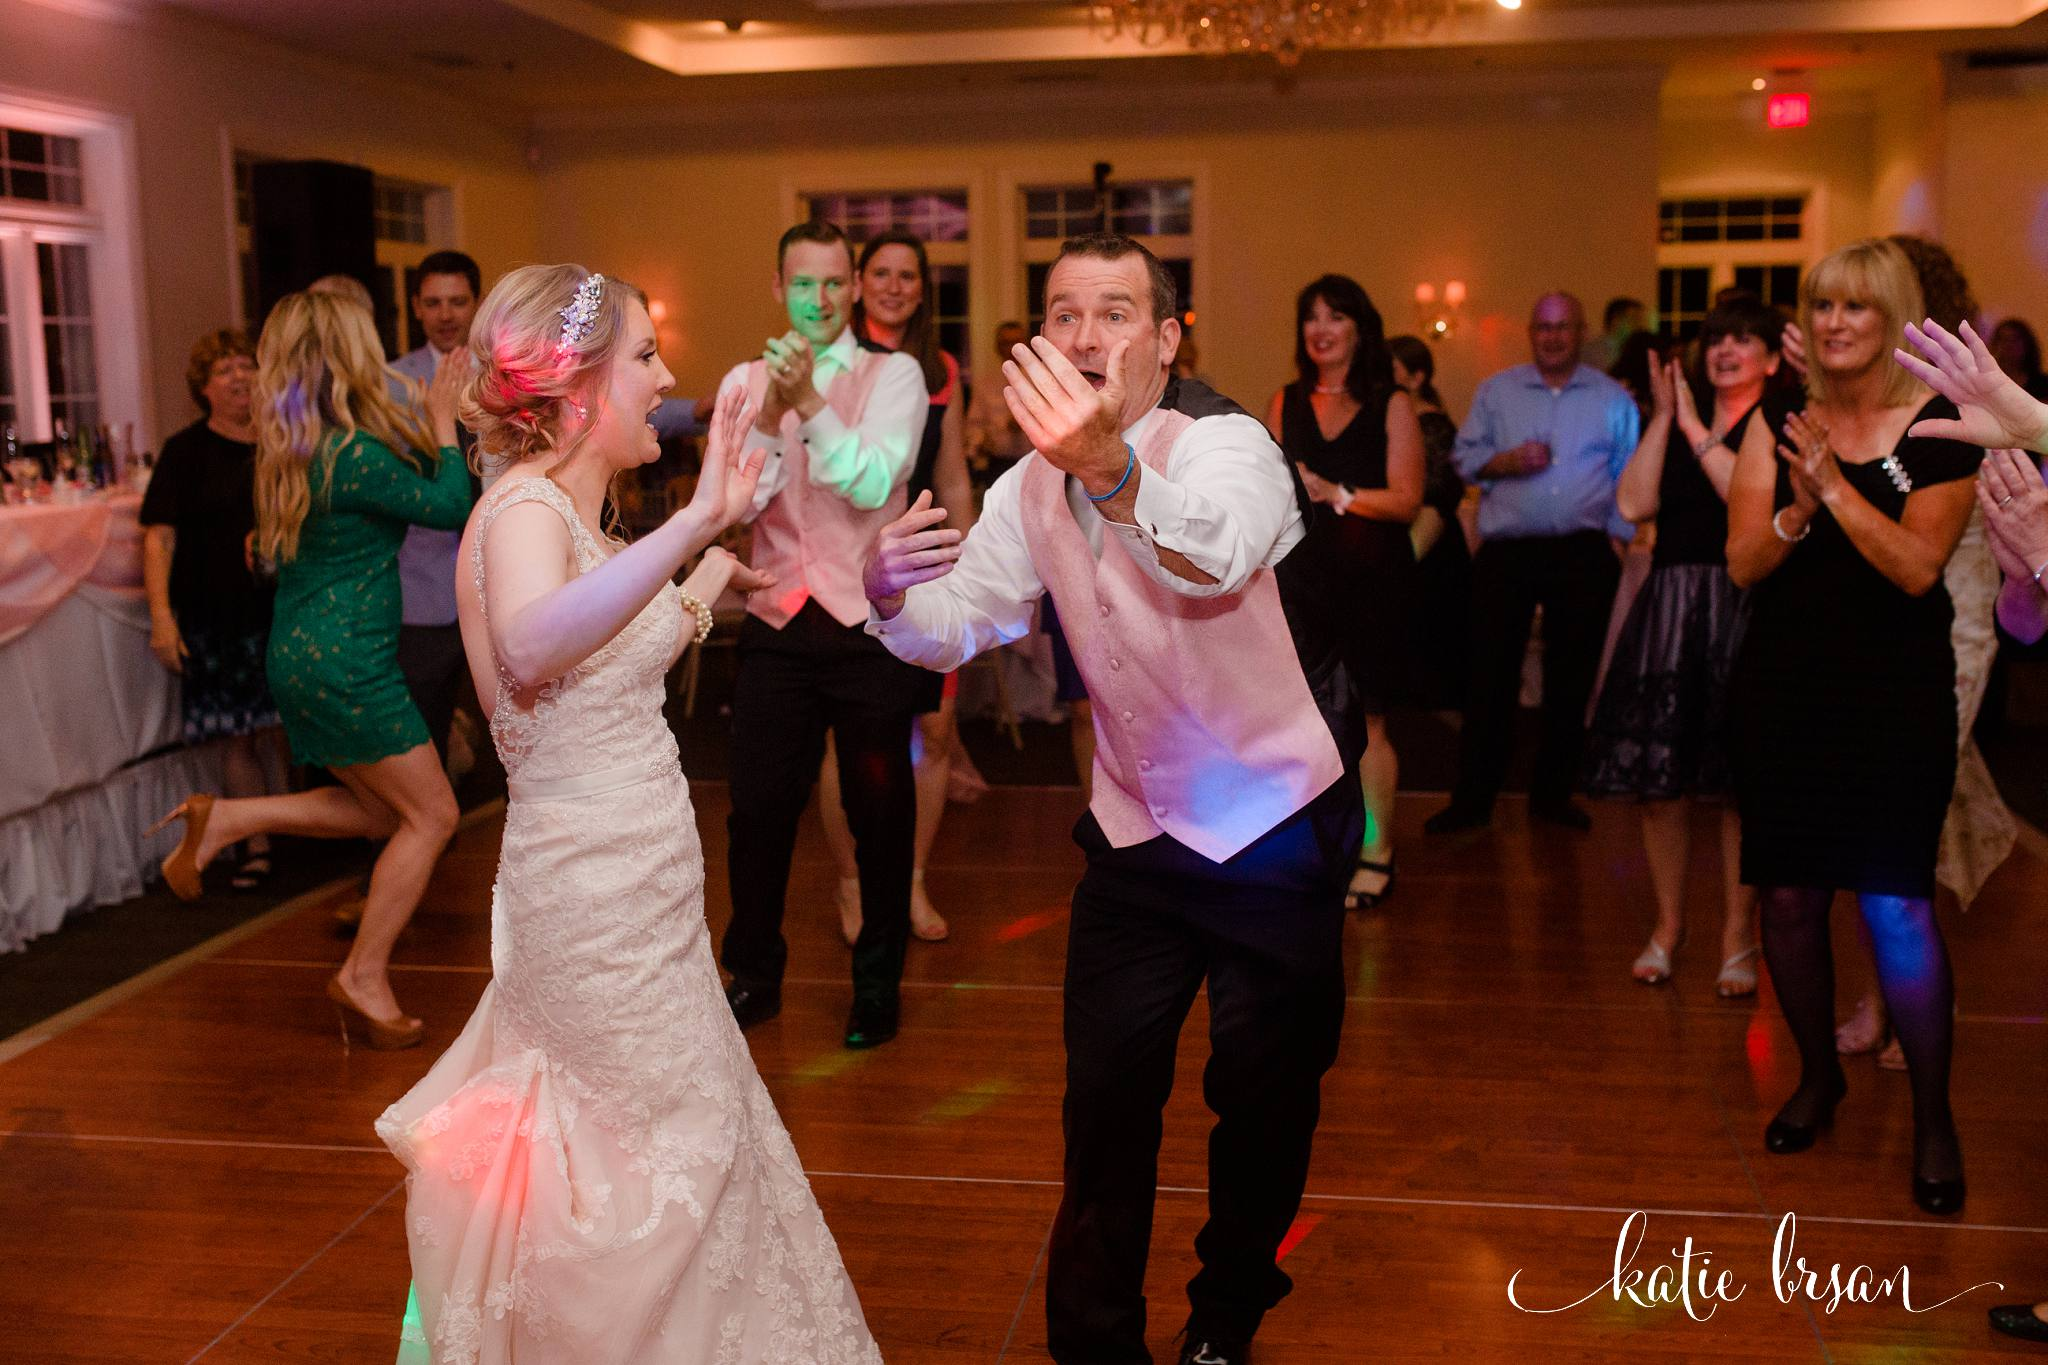 Mokena_Lemont_Wedding_Ruffled_Feathers_Wedding_1456.jpg